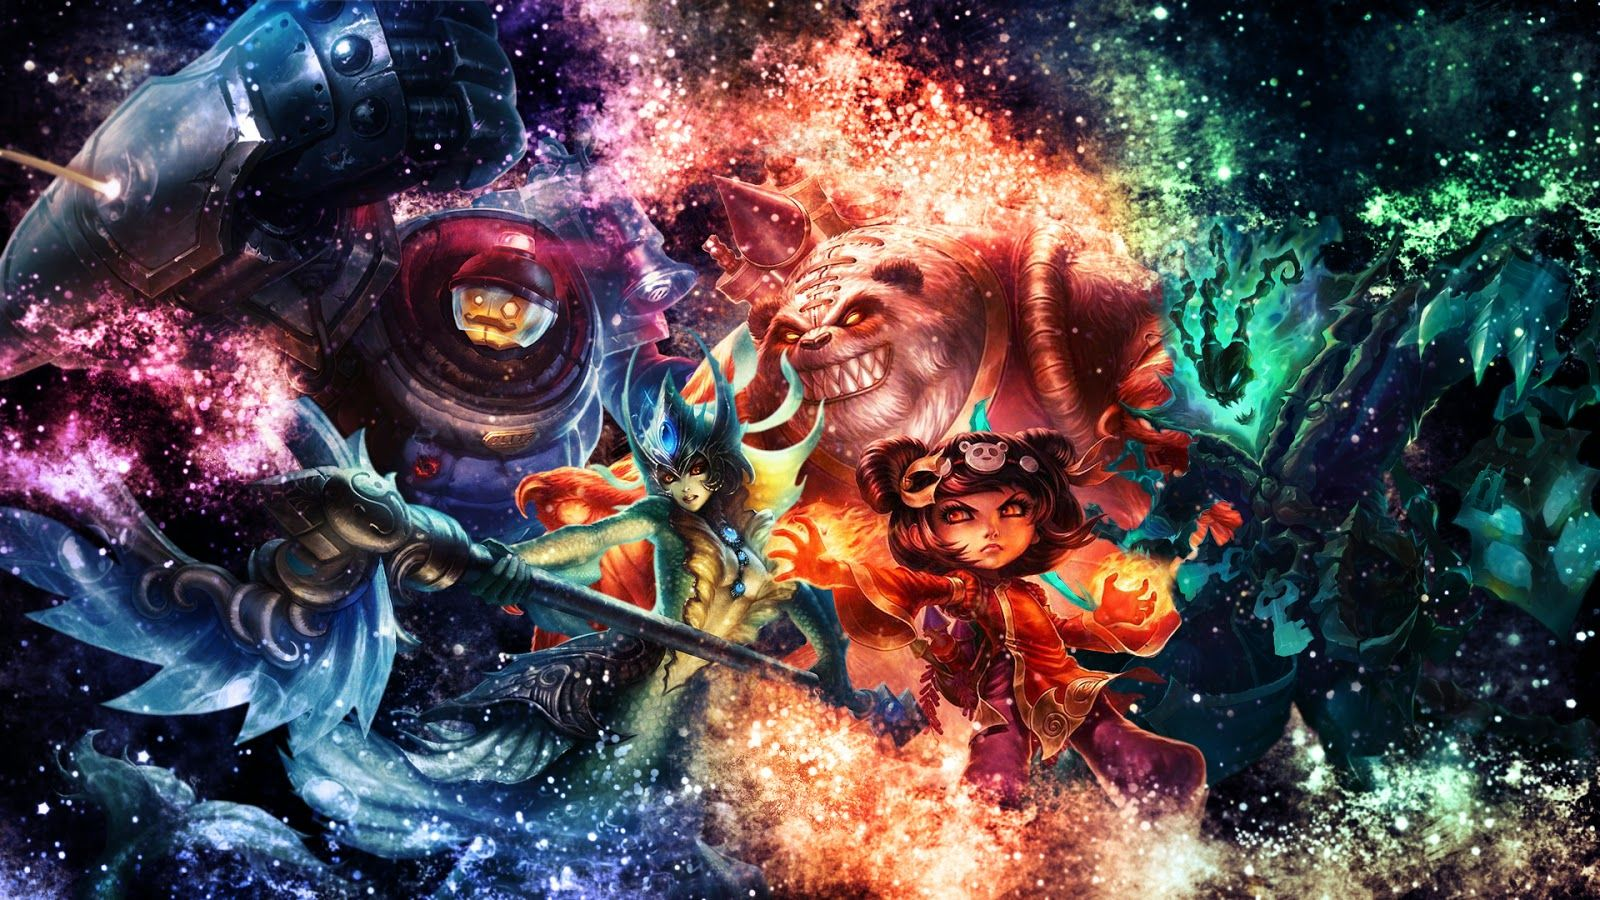 League Of Legends Desktop Wallpapers Top Free League Of Legends